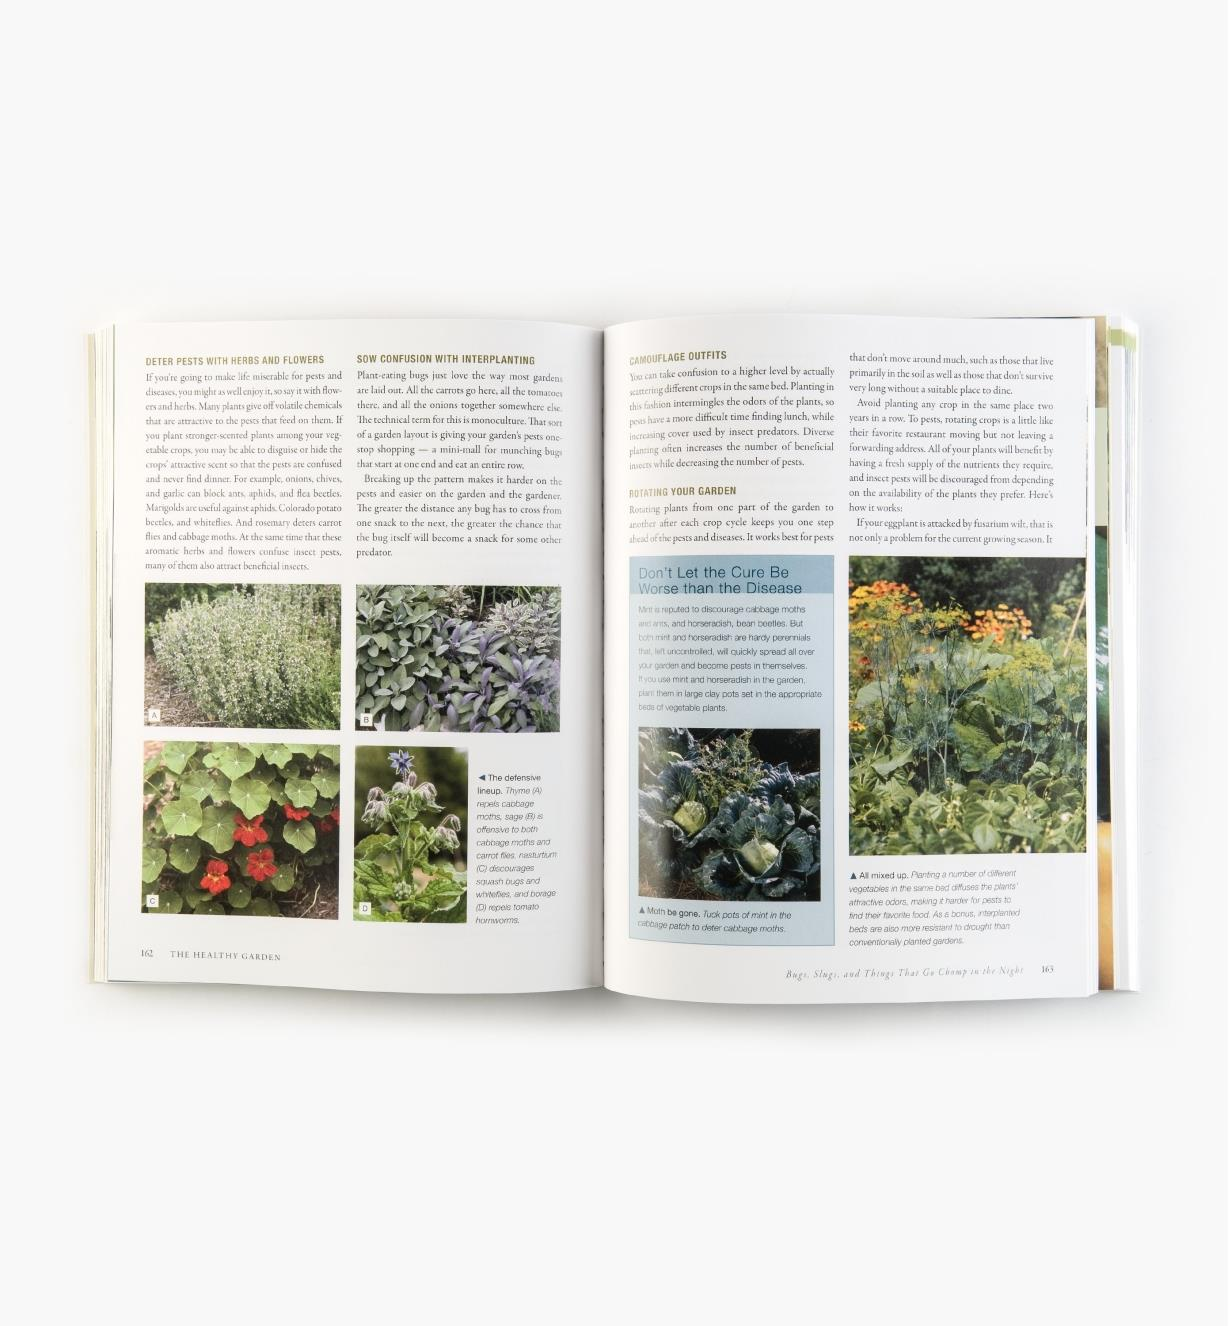 LA939 - The Vegetable Gardener's Bible, 10th Anniversary Edition